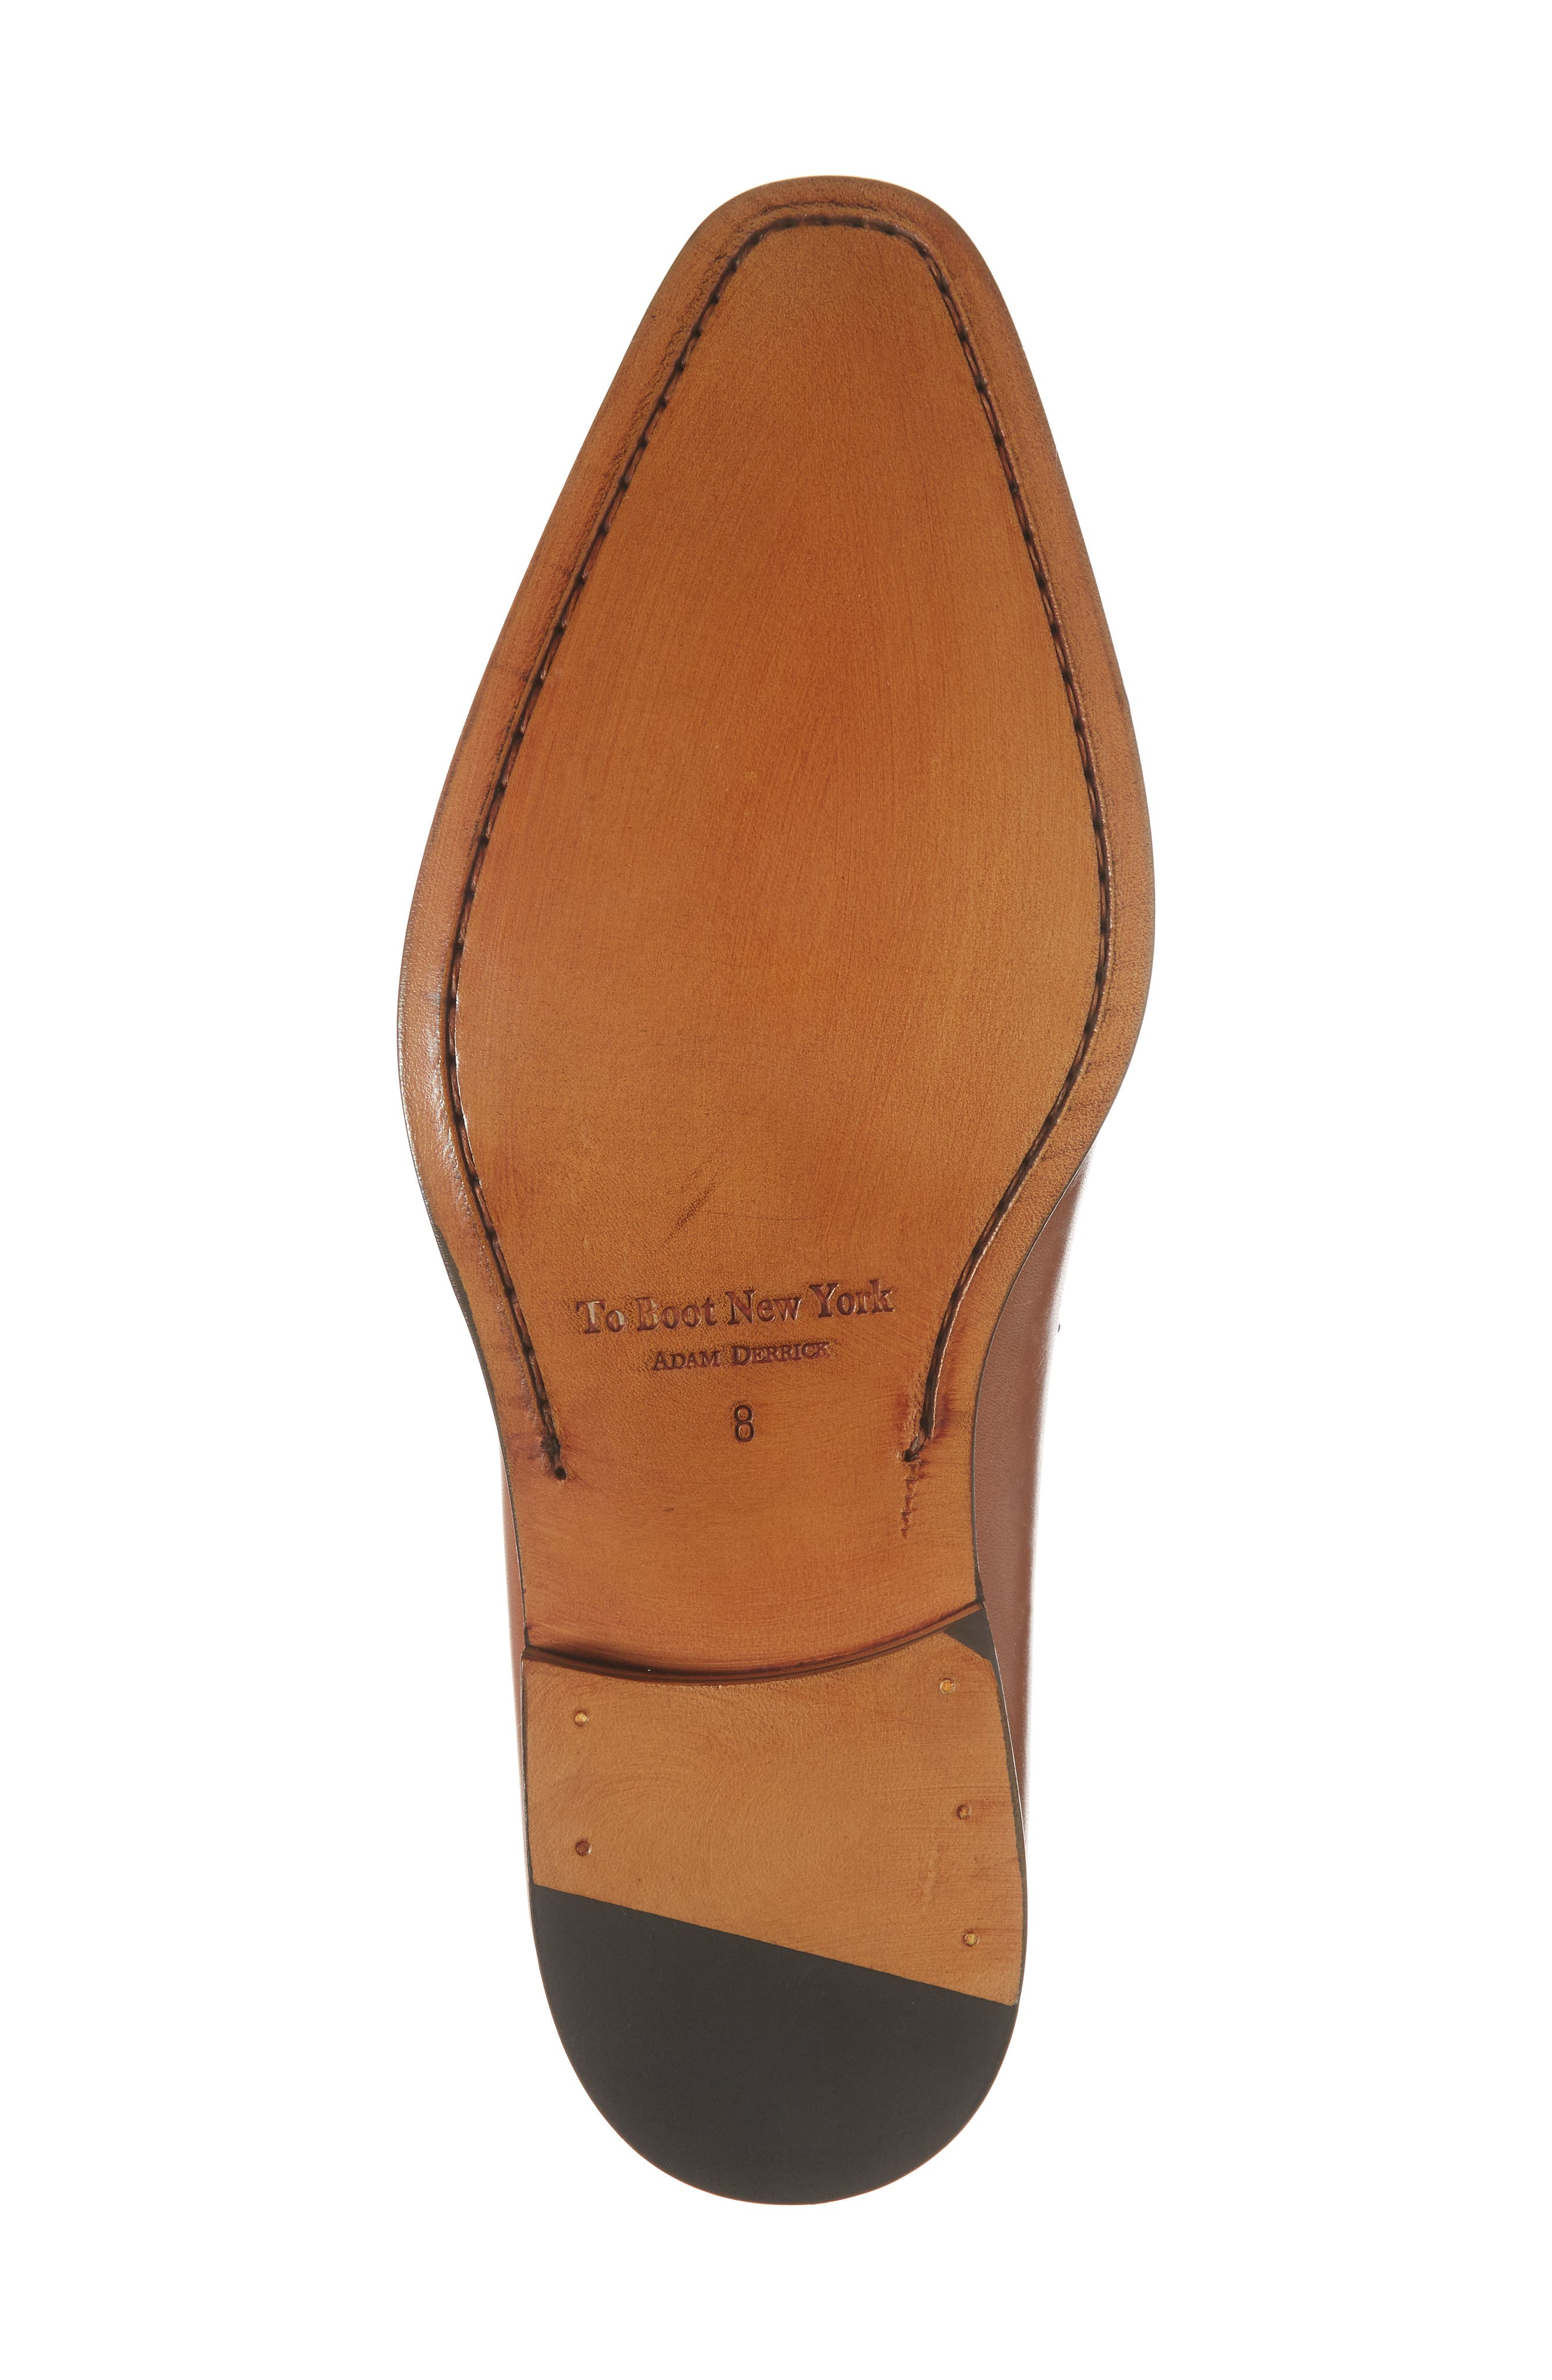 Eastwood Apron Toe Penny Loafer,                             Alternate thumbnail 6, color,                             231